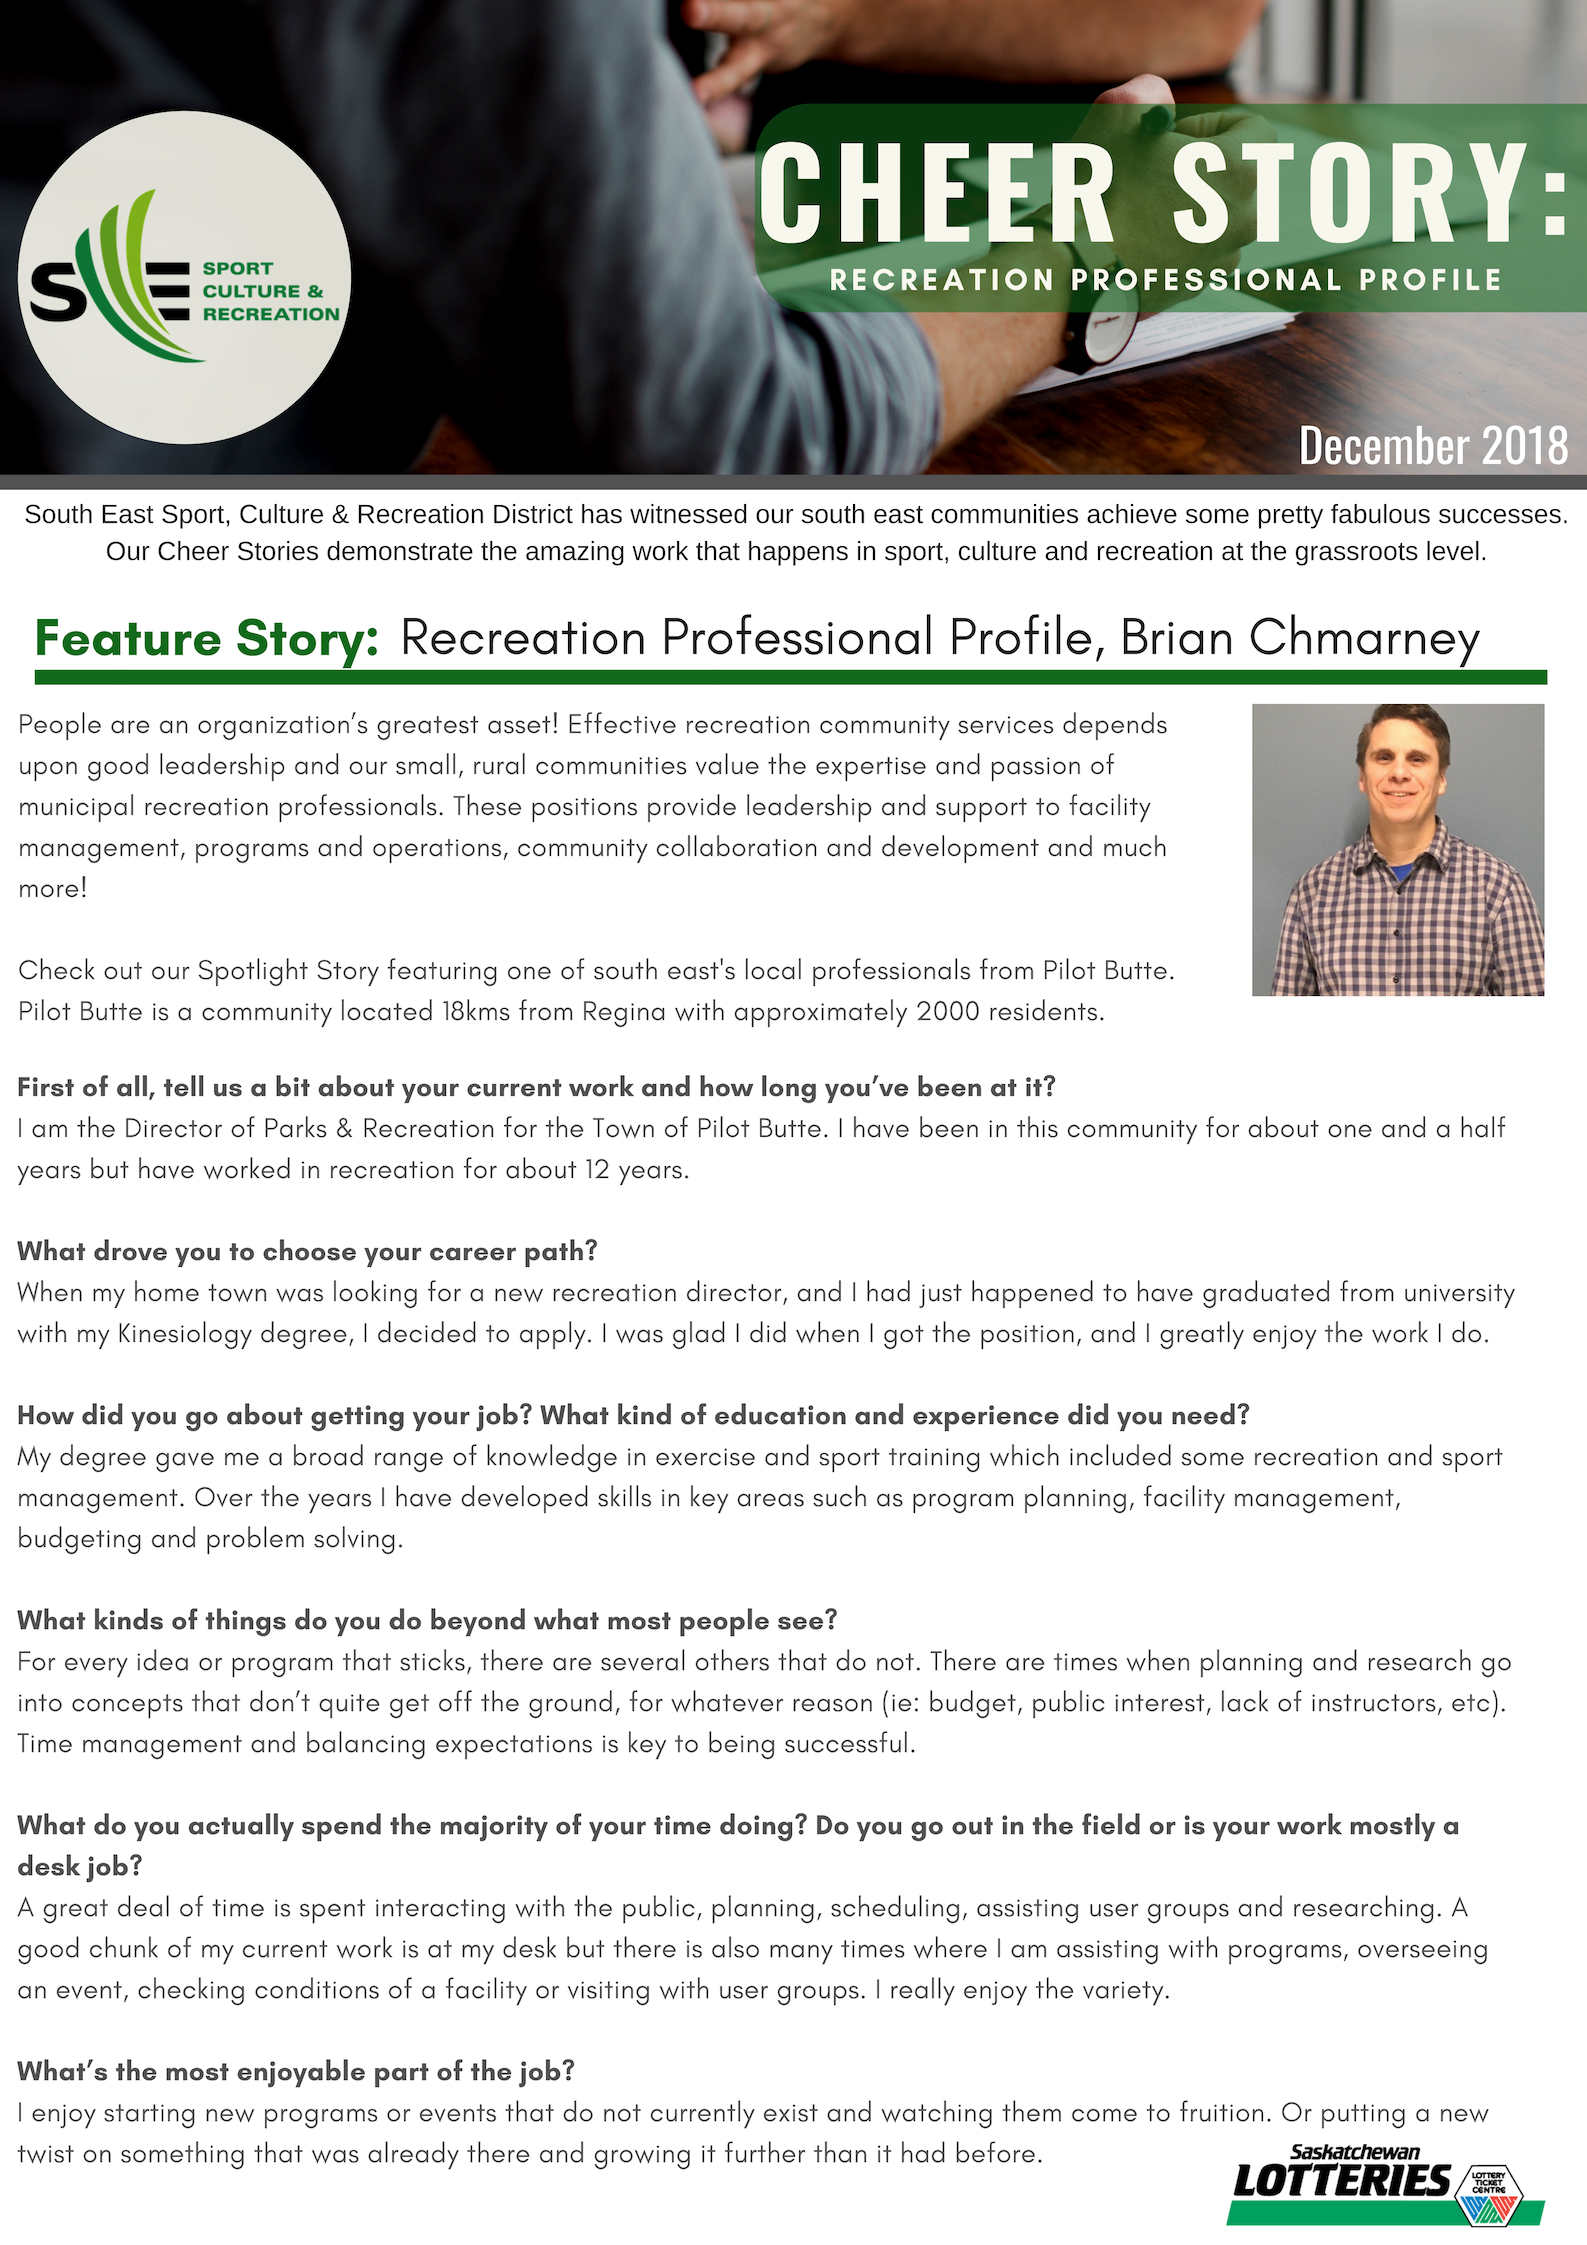 Cheer Story: Recreation Professional Profile, Brian Chmarney - Image 1